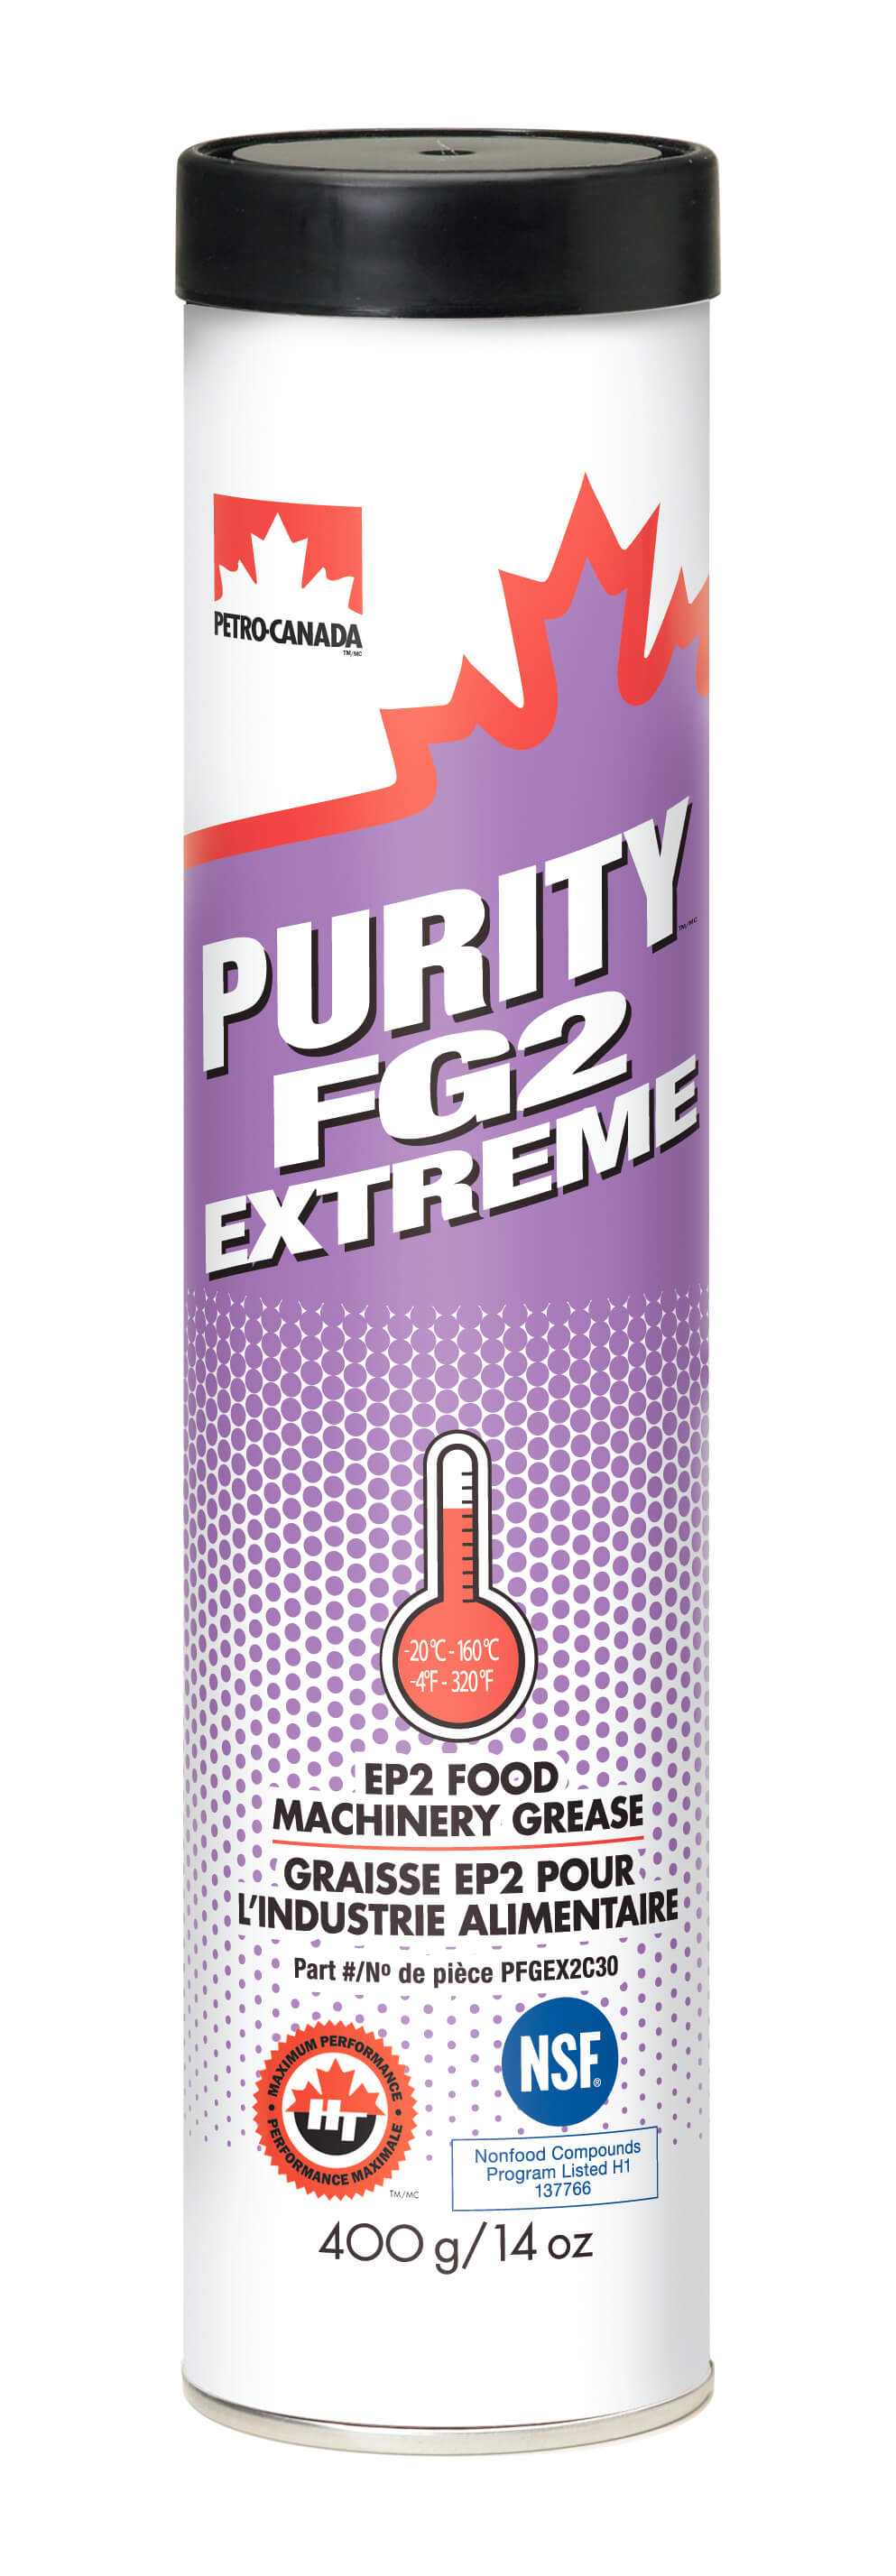 Petro-Canada Purity FG2 Extreme